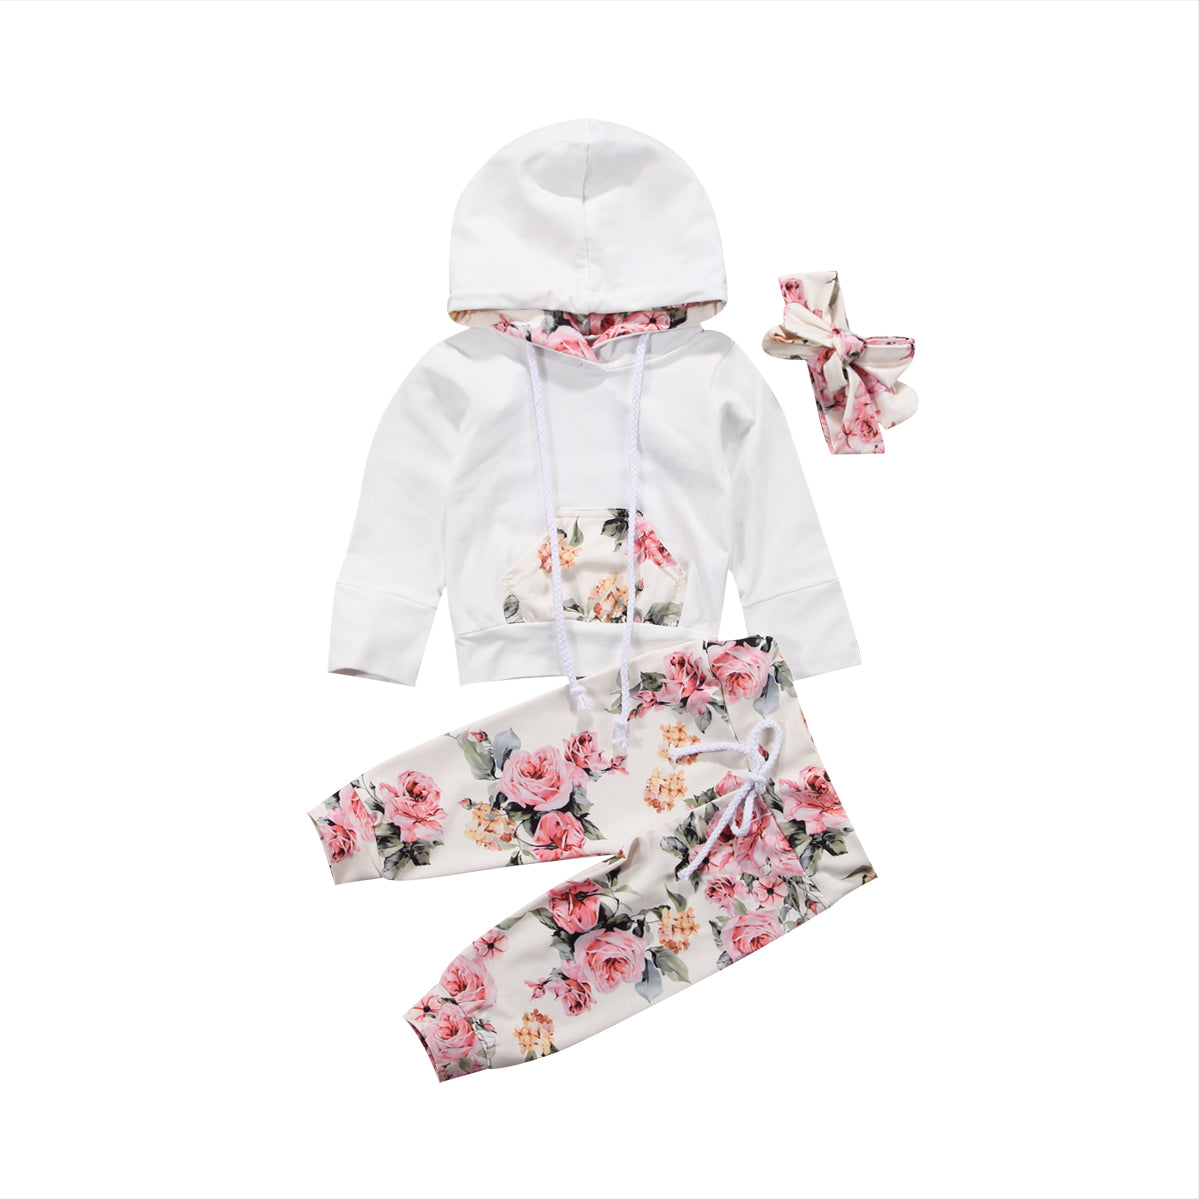 57dbca4d436d Baby Clothes - BabyStored.com